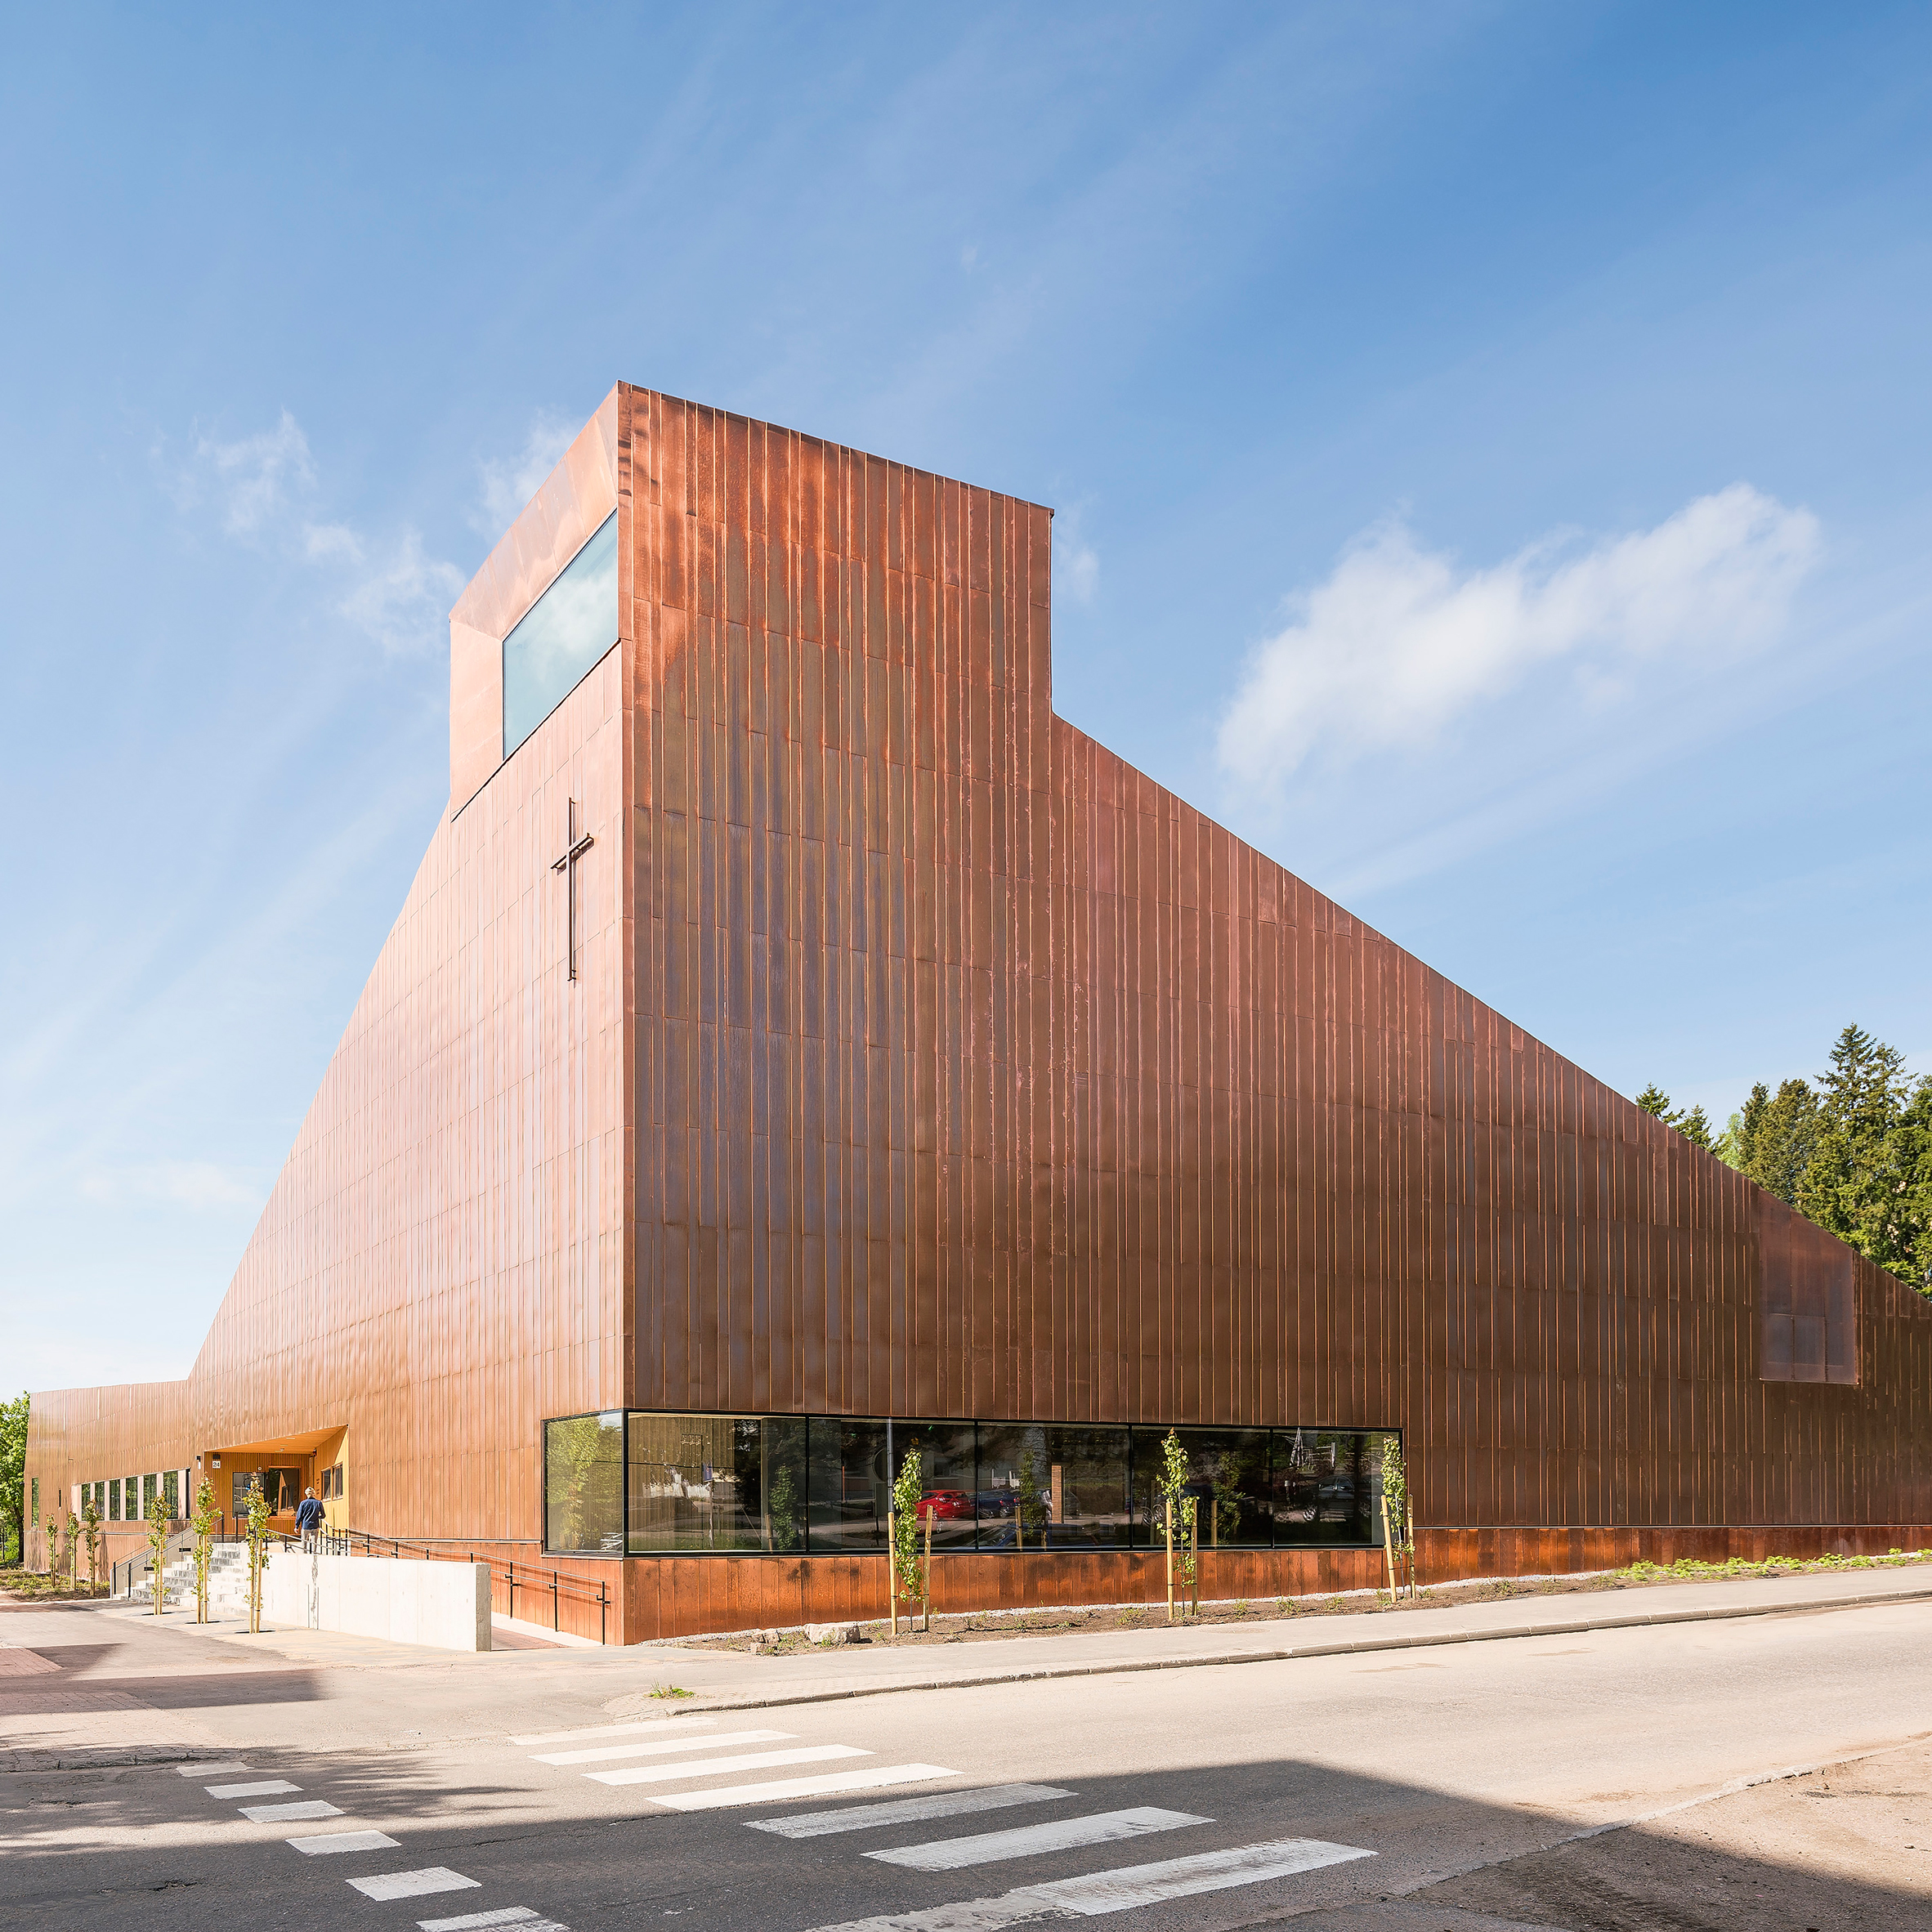 finnish architecture and design dezeen magazine copper covers walls and roof of finnish chapel by oopeaa